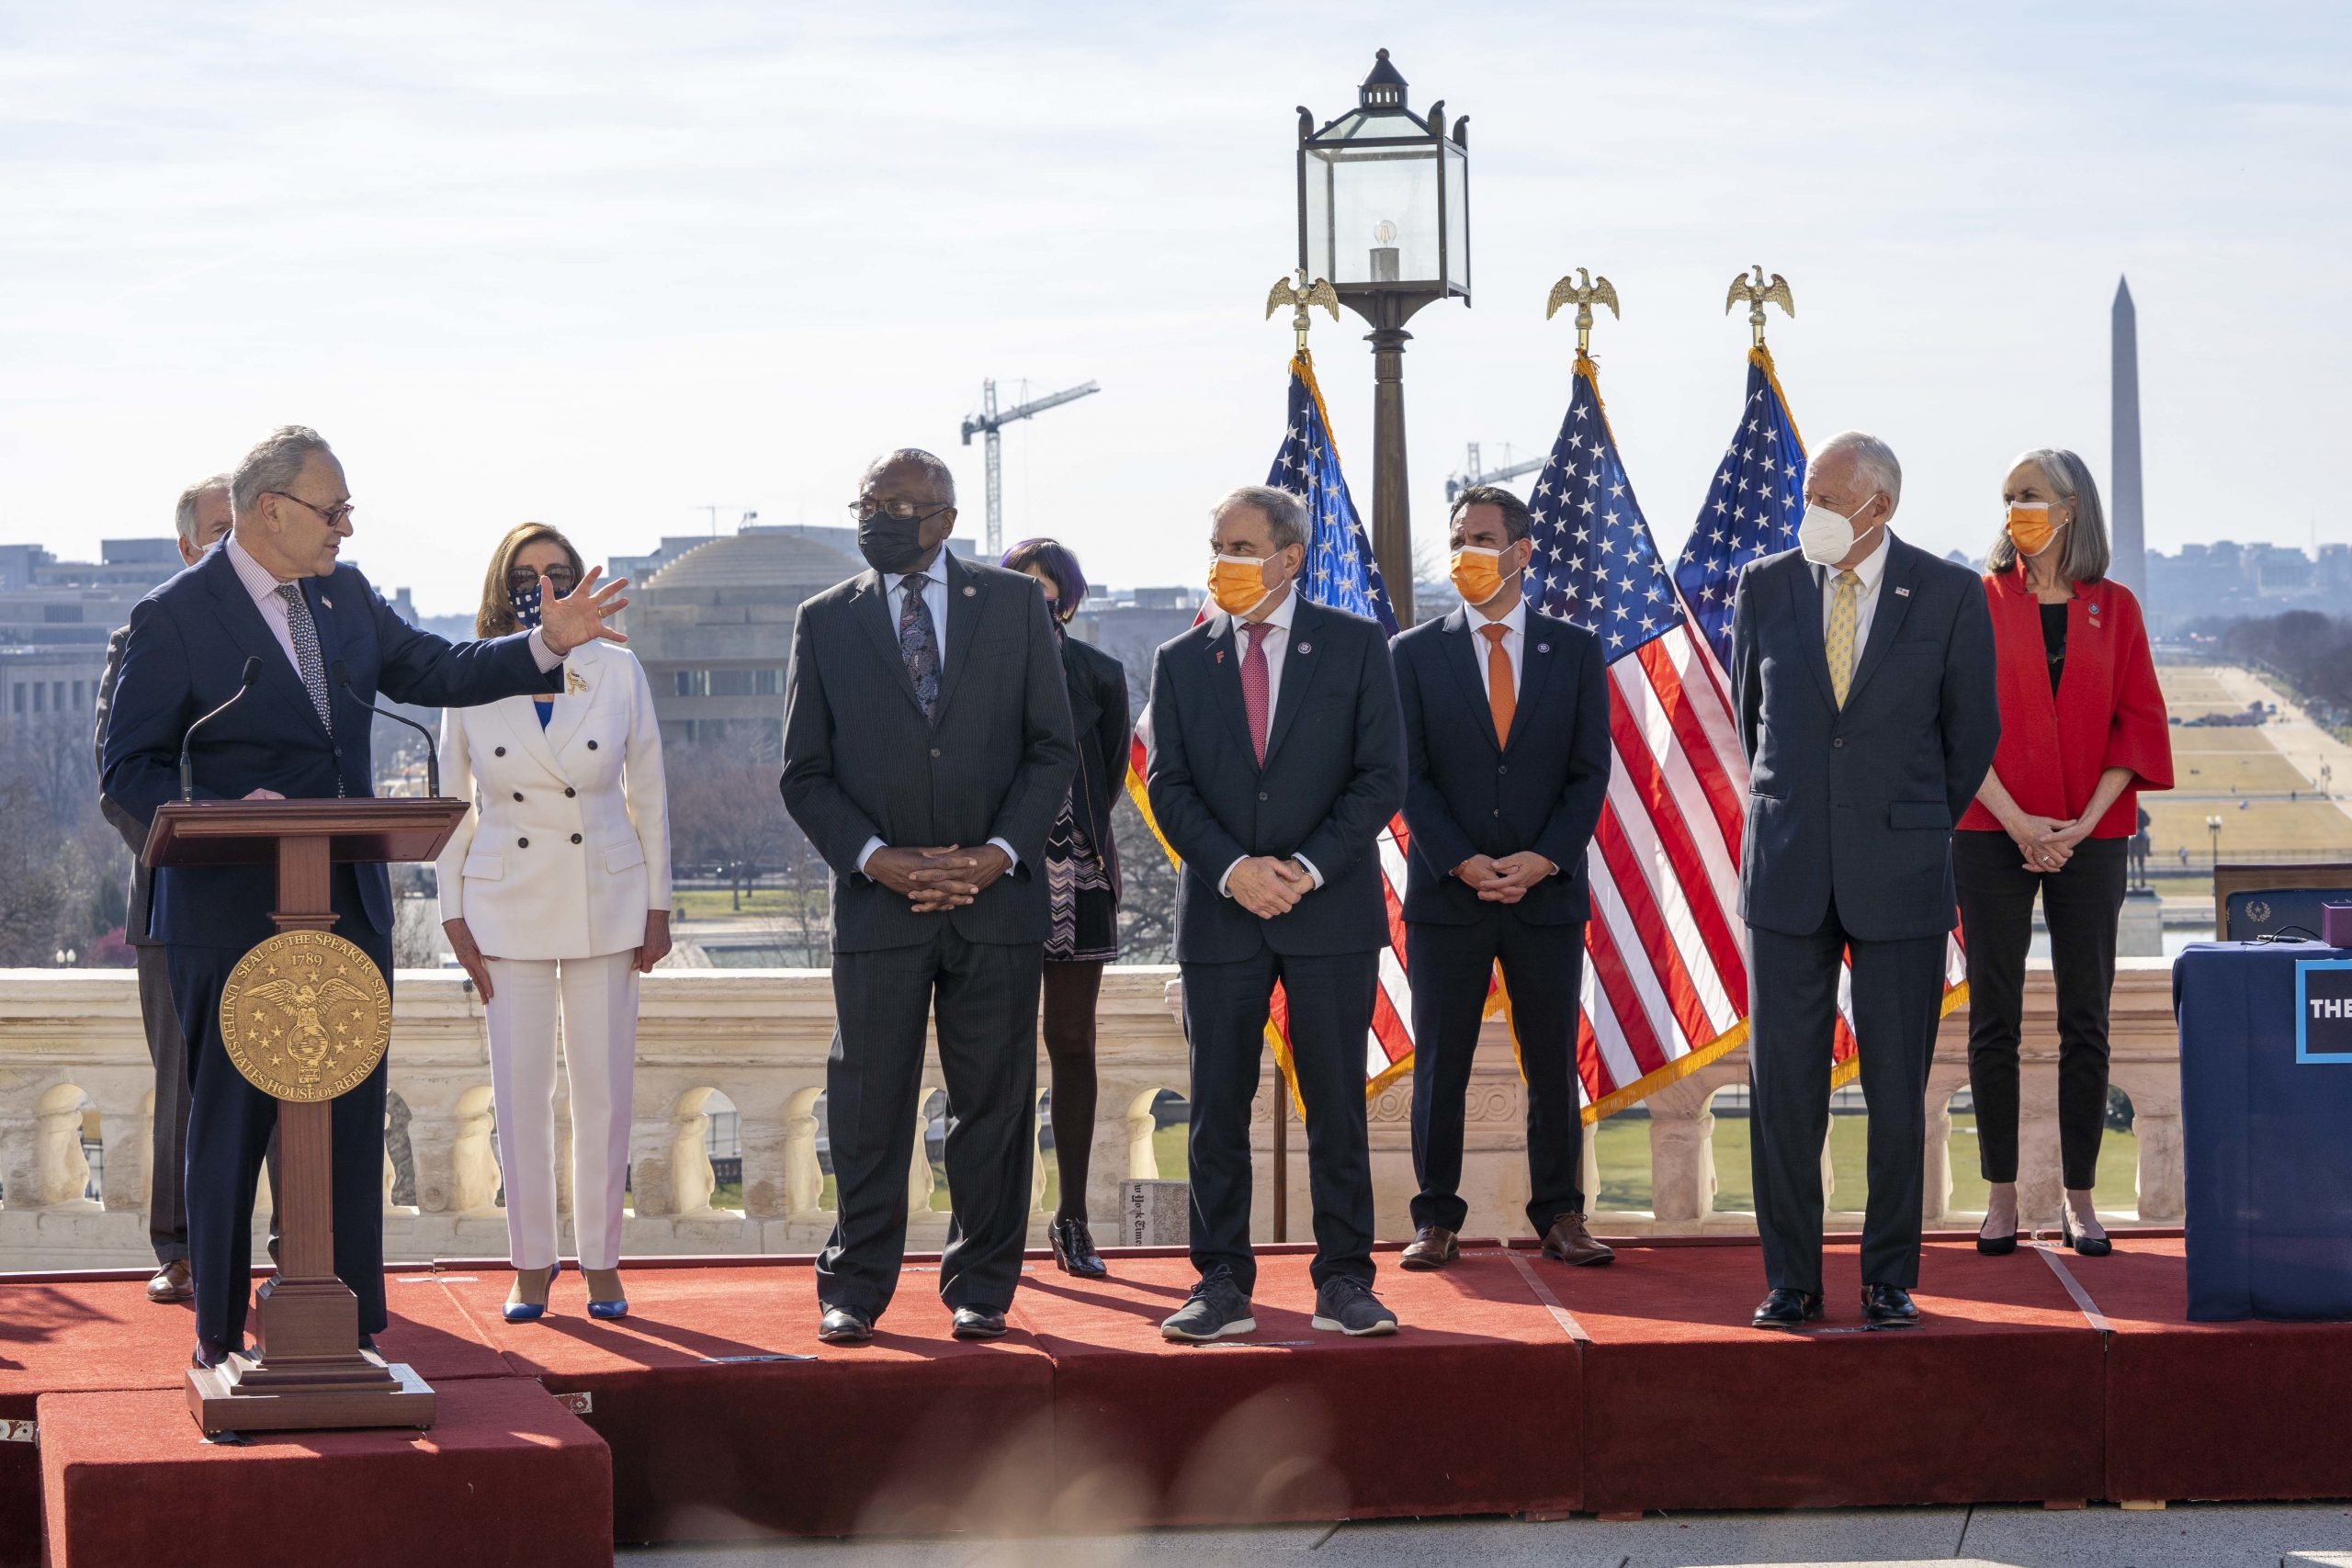 Congressional Democrats at a press conference in March 2021.